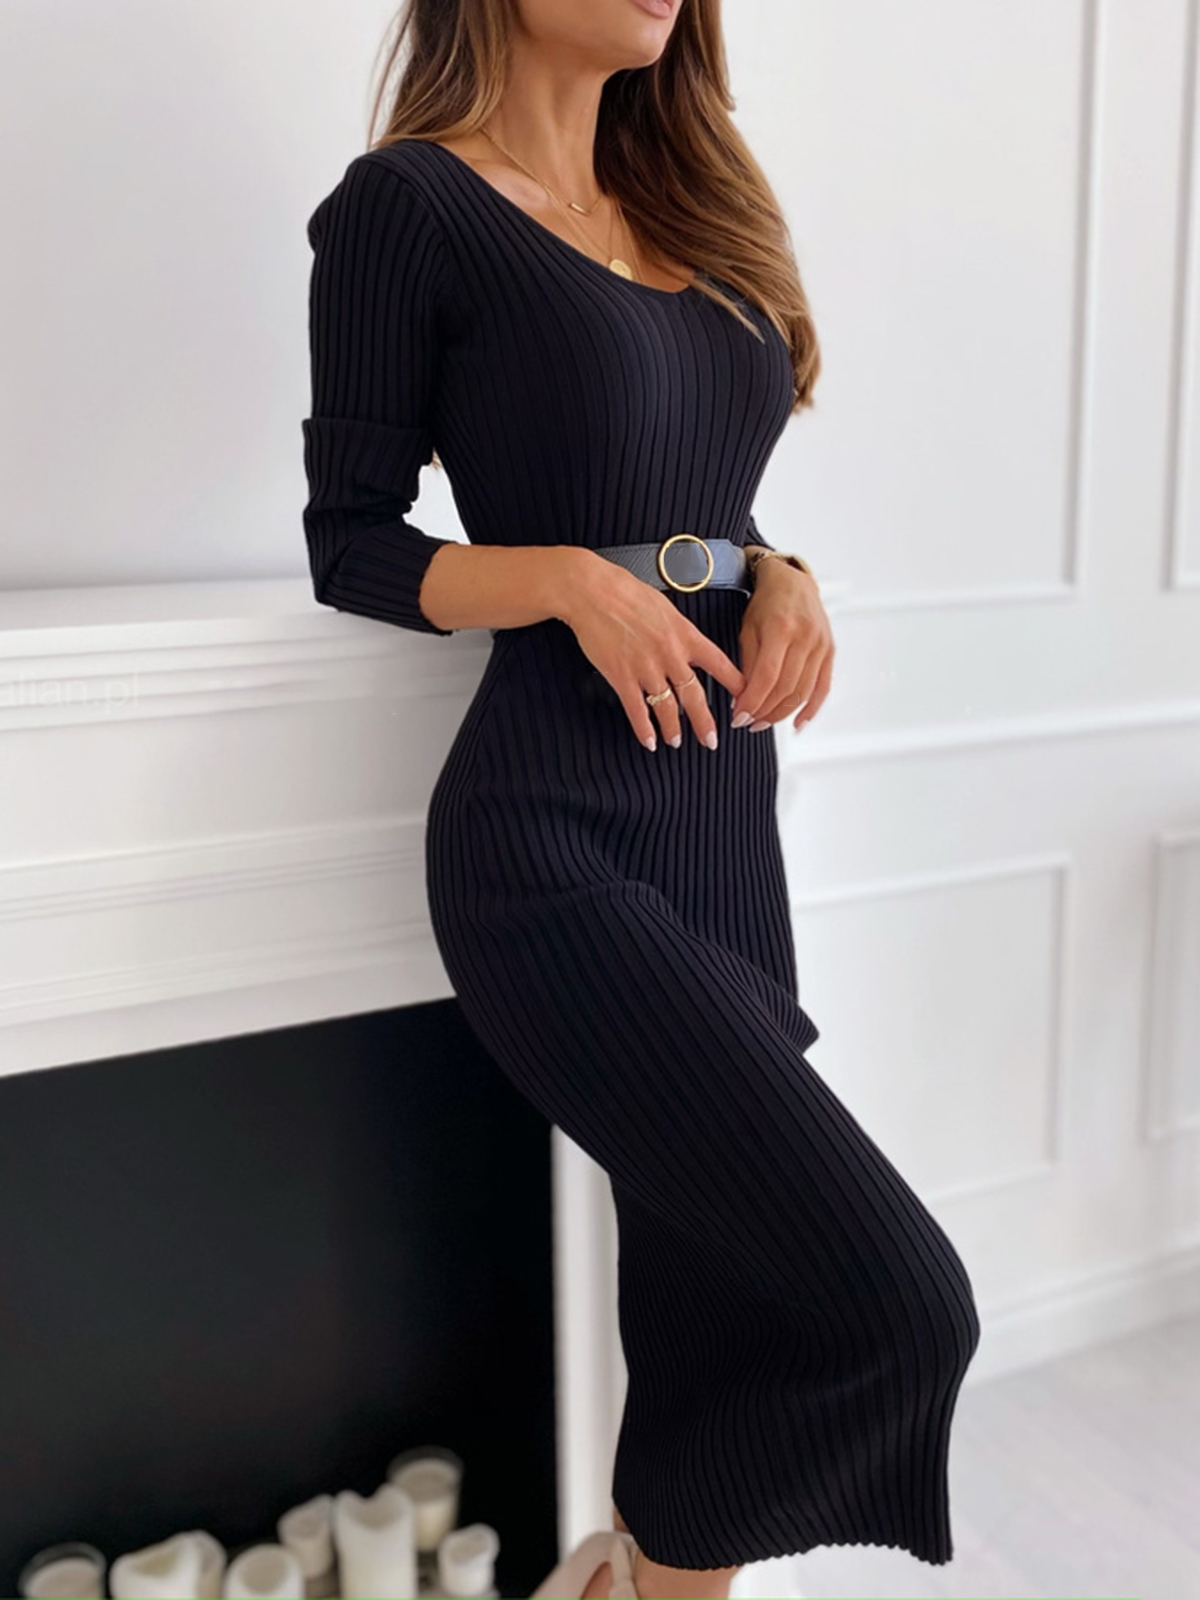 Women's long sleeve v-neck sexy tight sweater dress